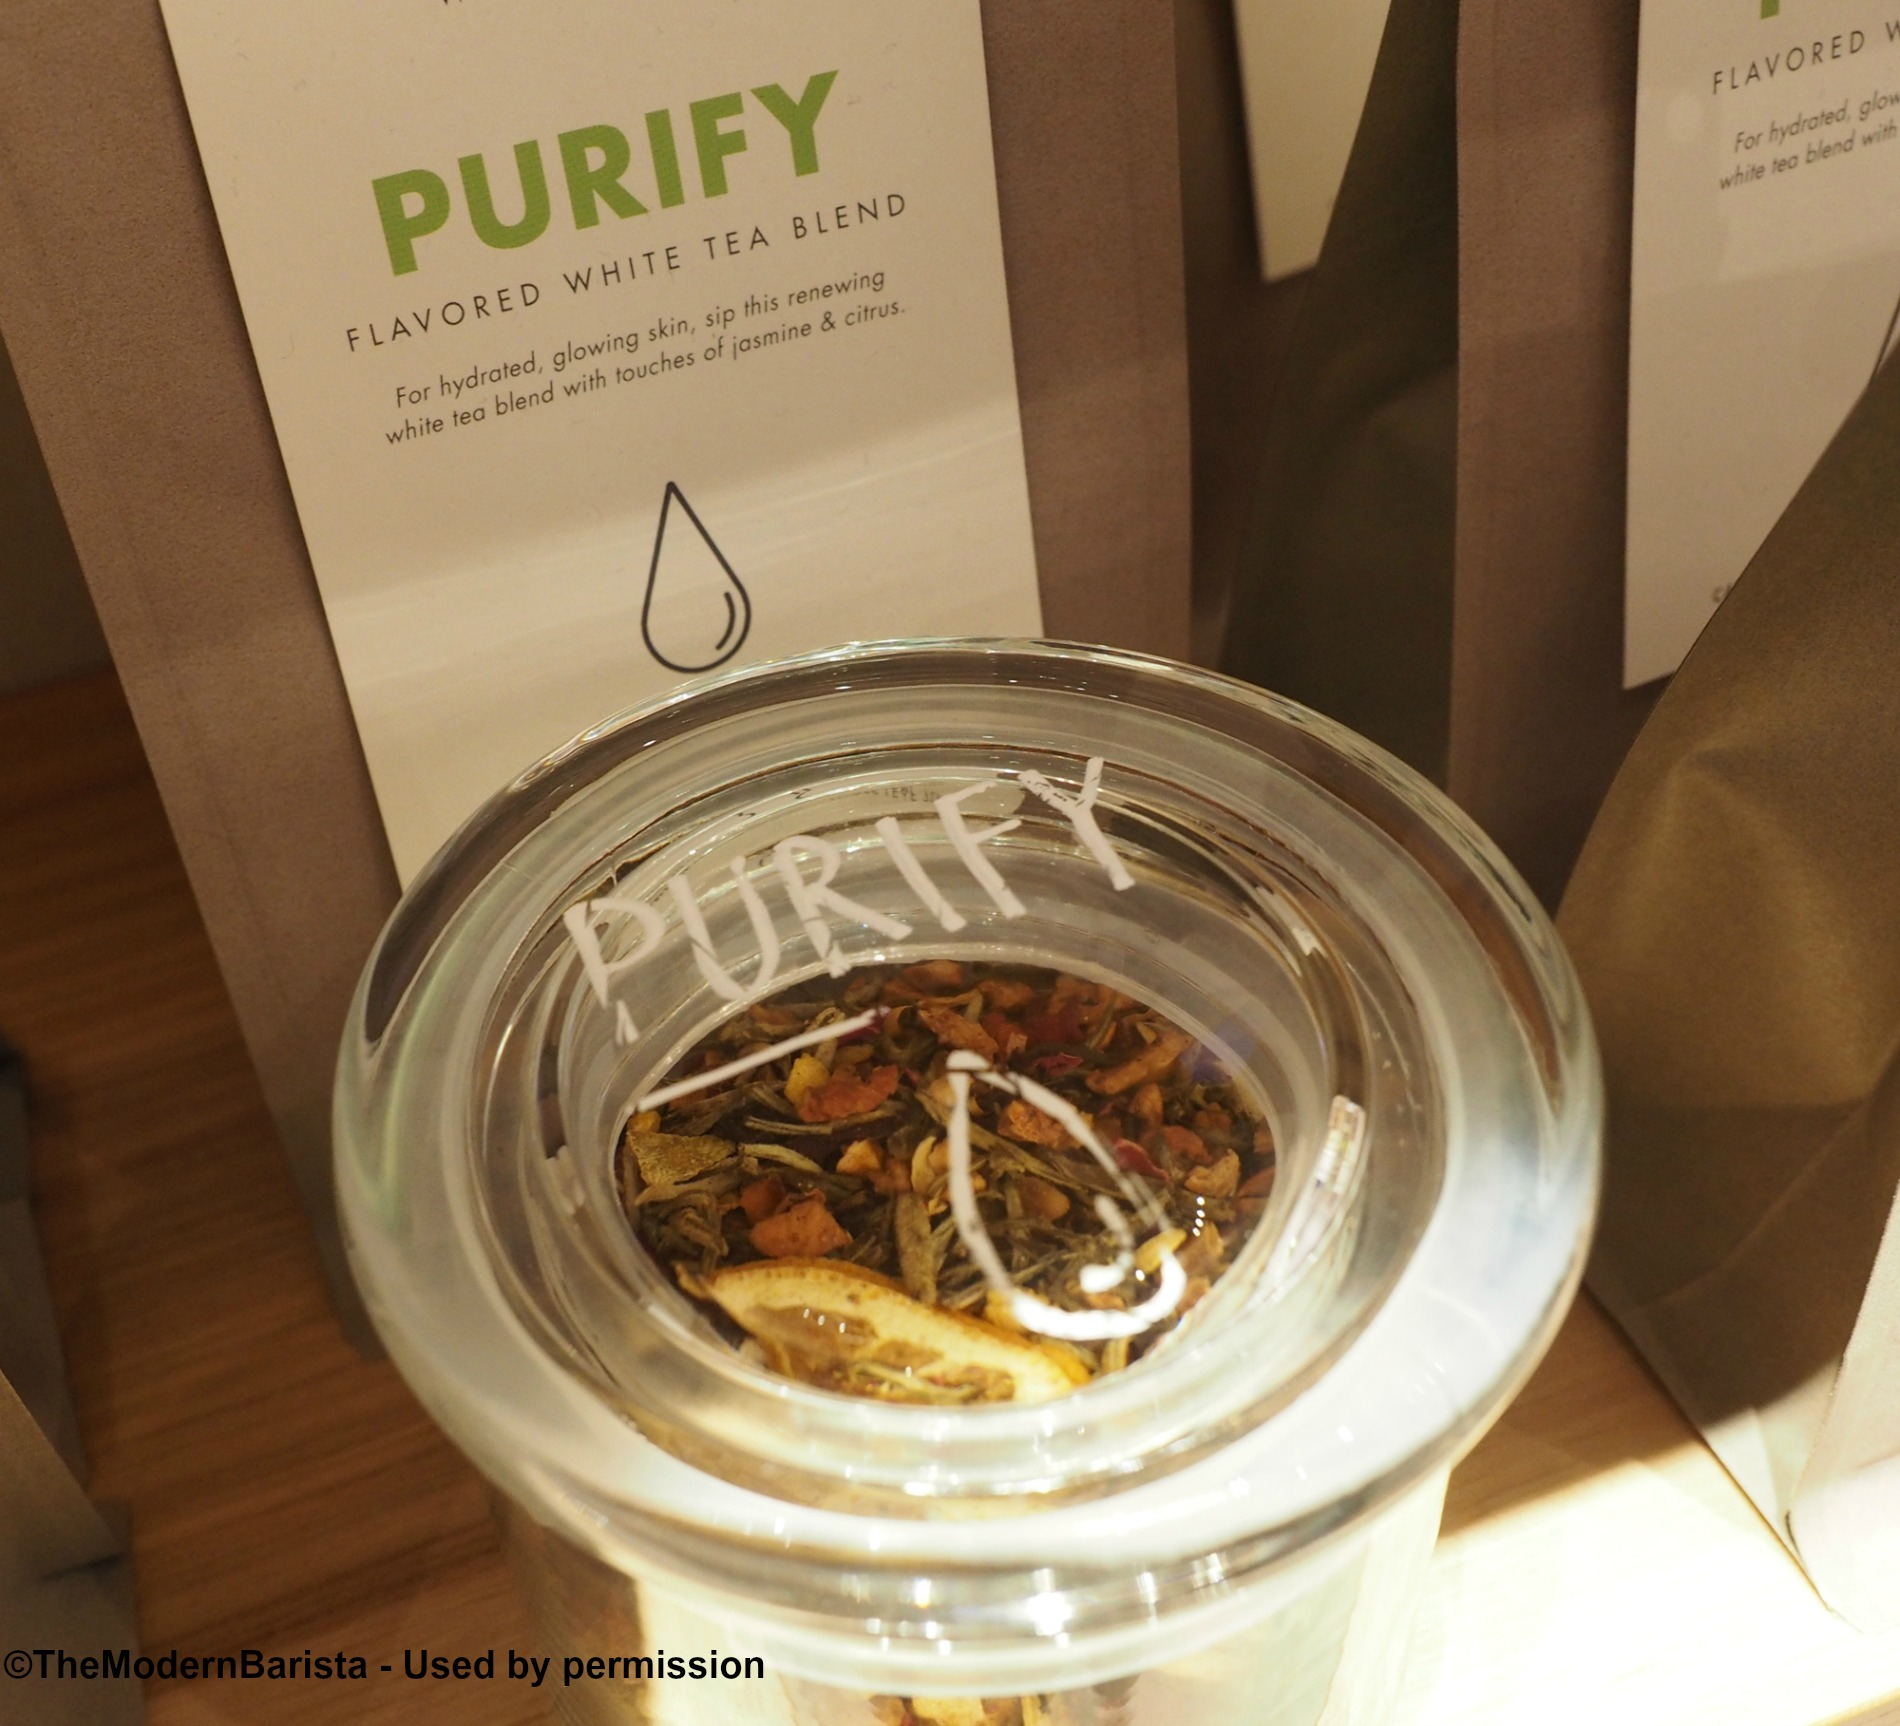 2 - 1 - teavana04 Purify 10 Nov 15 Southcenter Starbucks.jpg